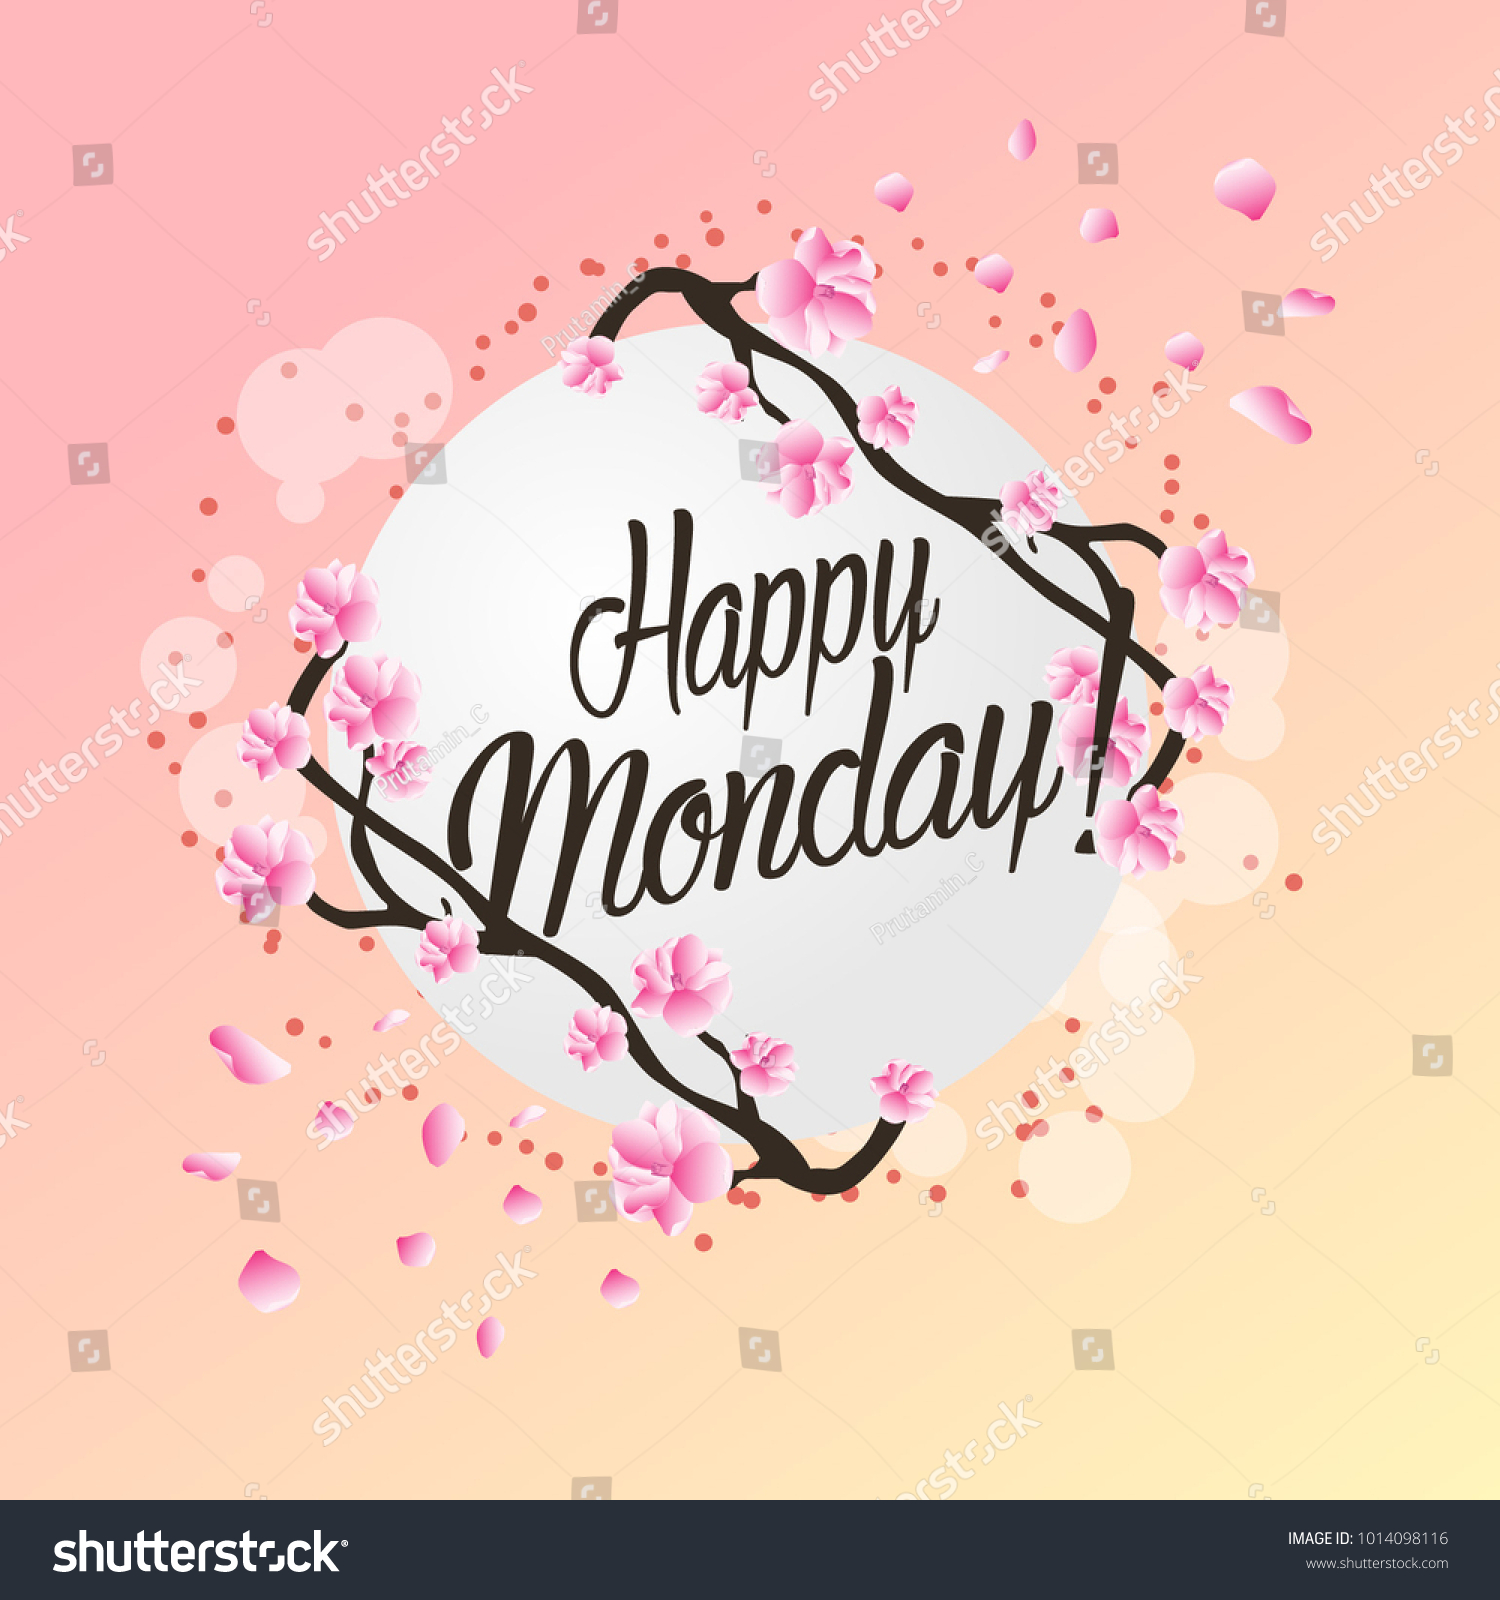 Happy Monday Beautiful Greeting Card Flower Stock Vector Royalty